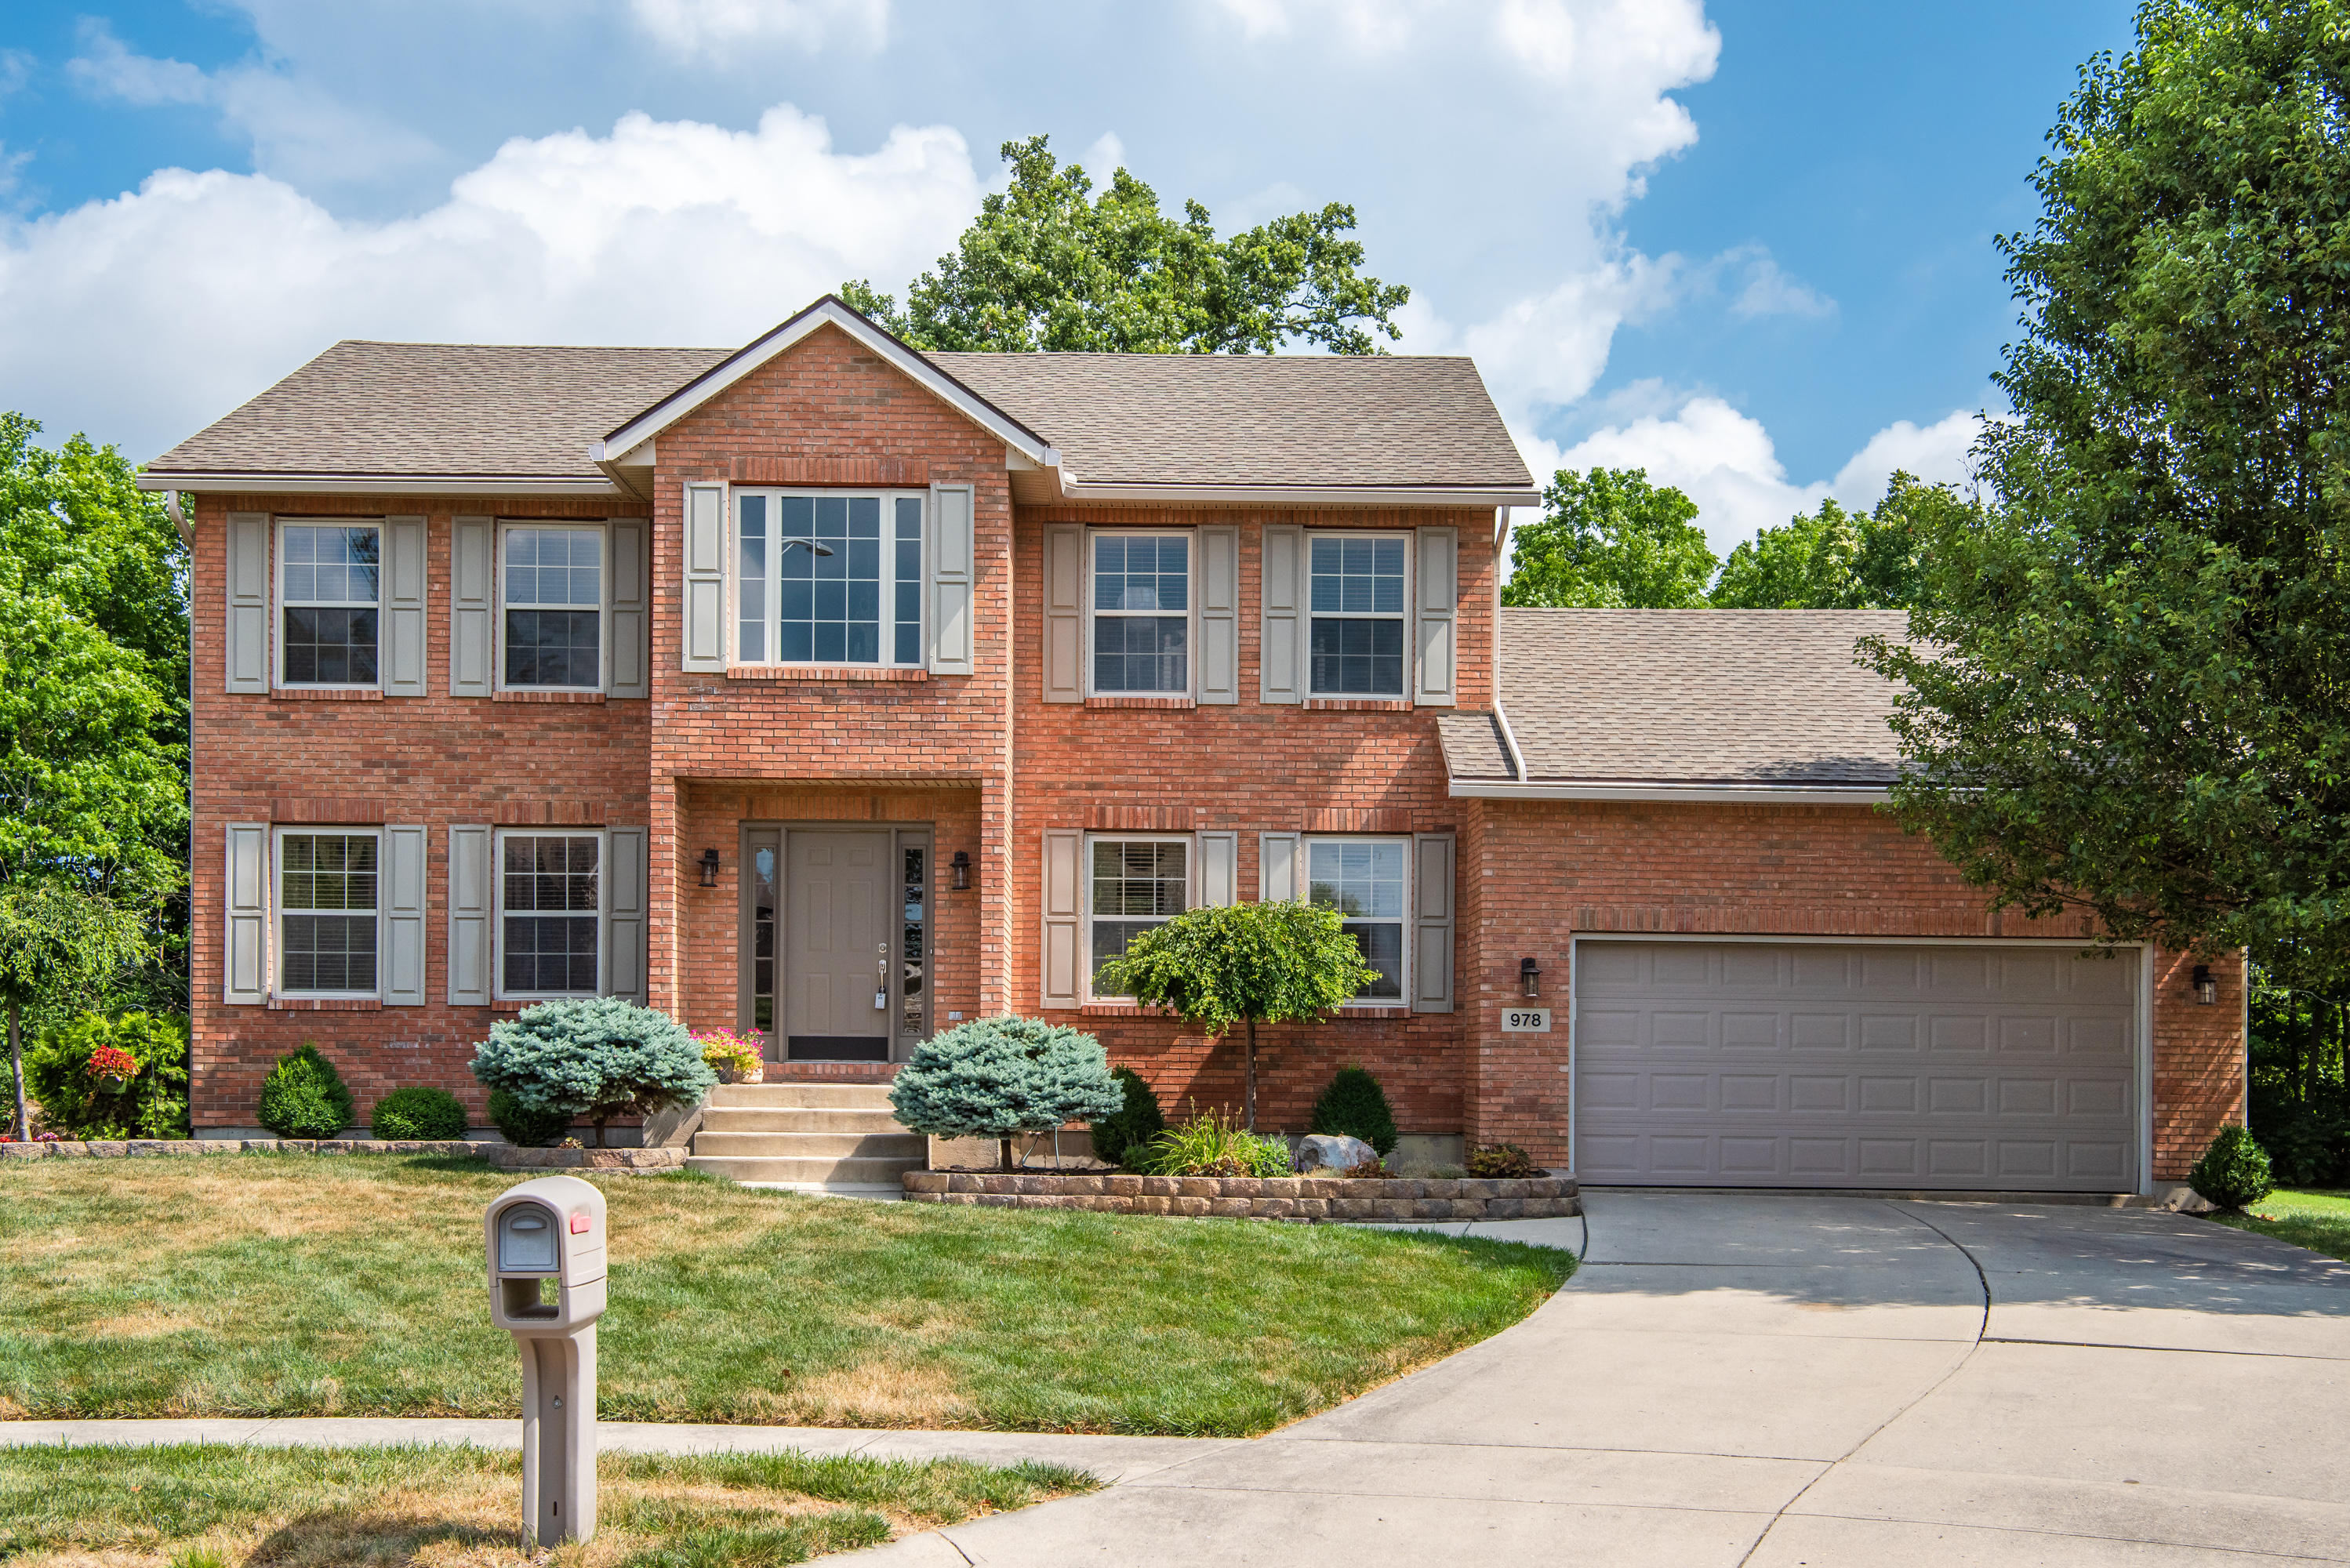 978 Meadow Thrush Dr Englewood, OH